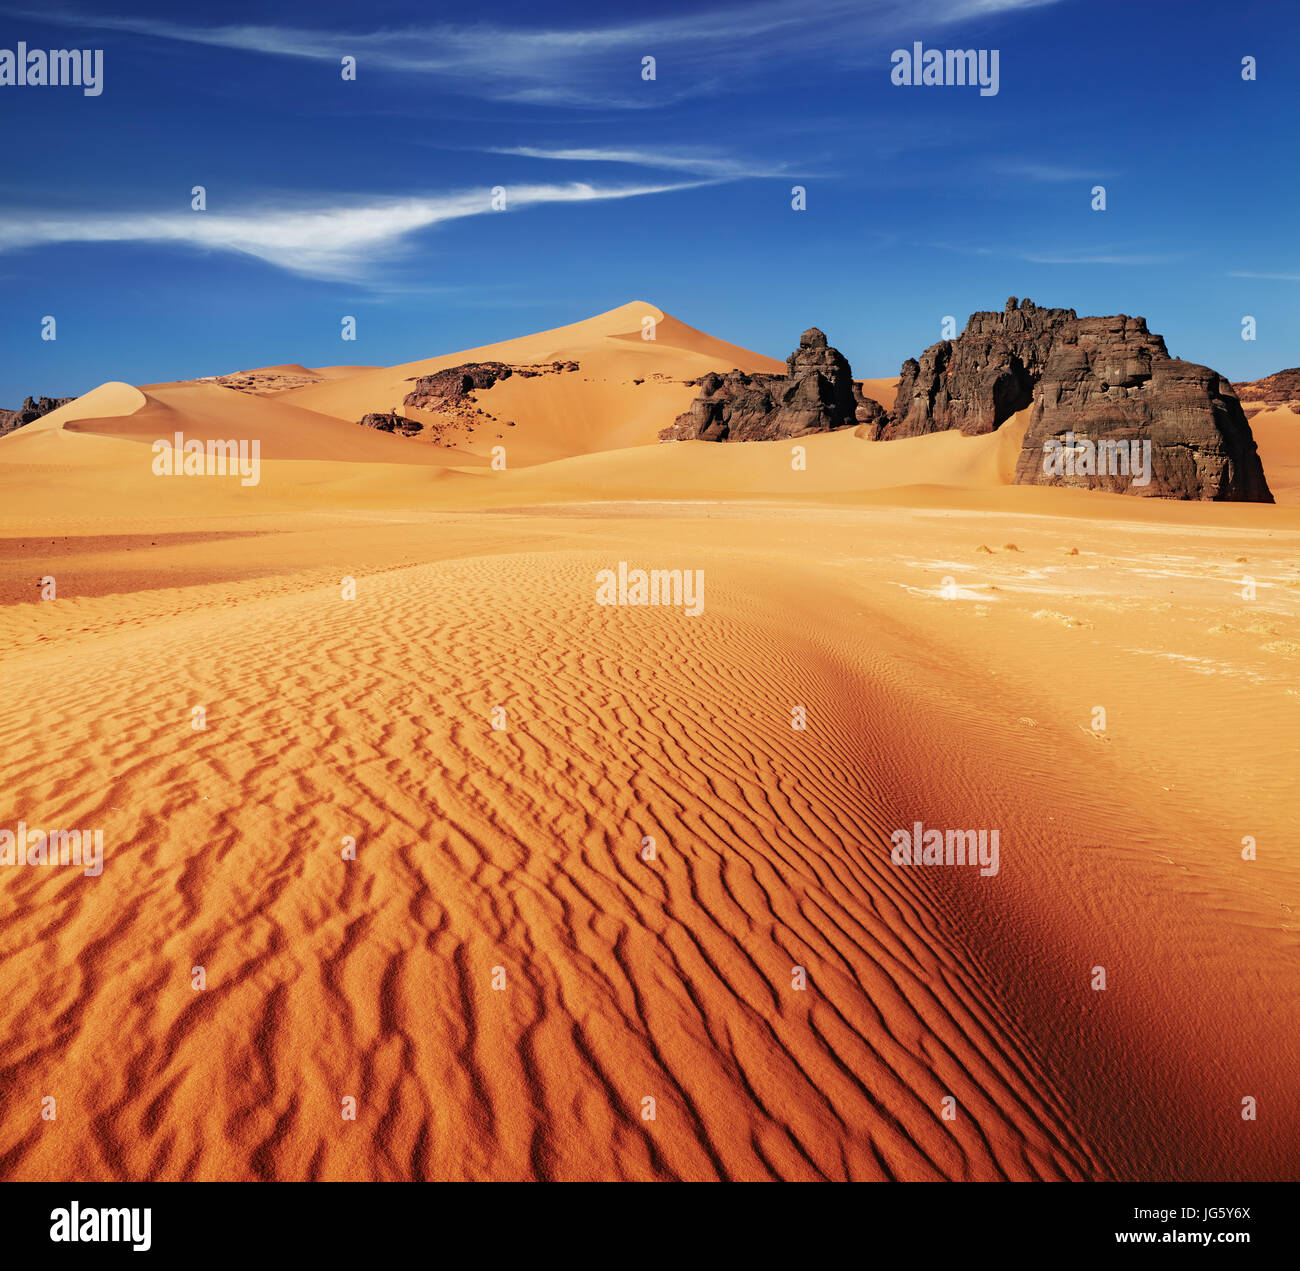 Sand dunes and rocks, Sahara Desert, Algeria - Stock Image